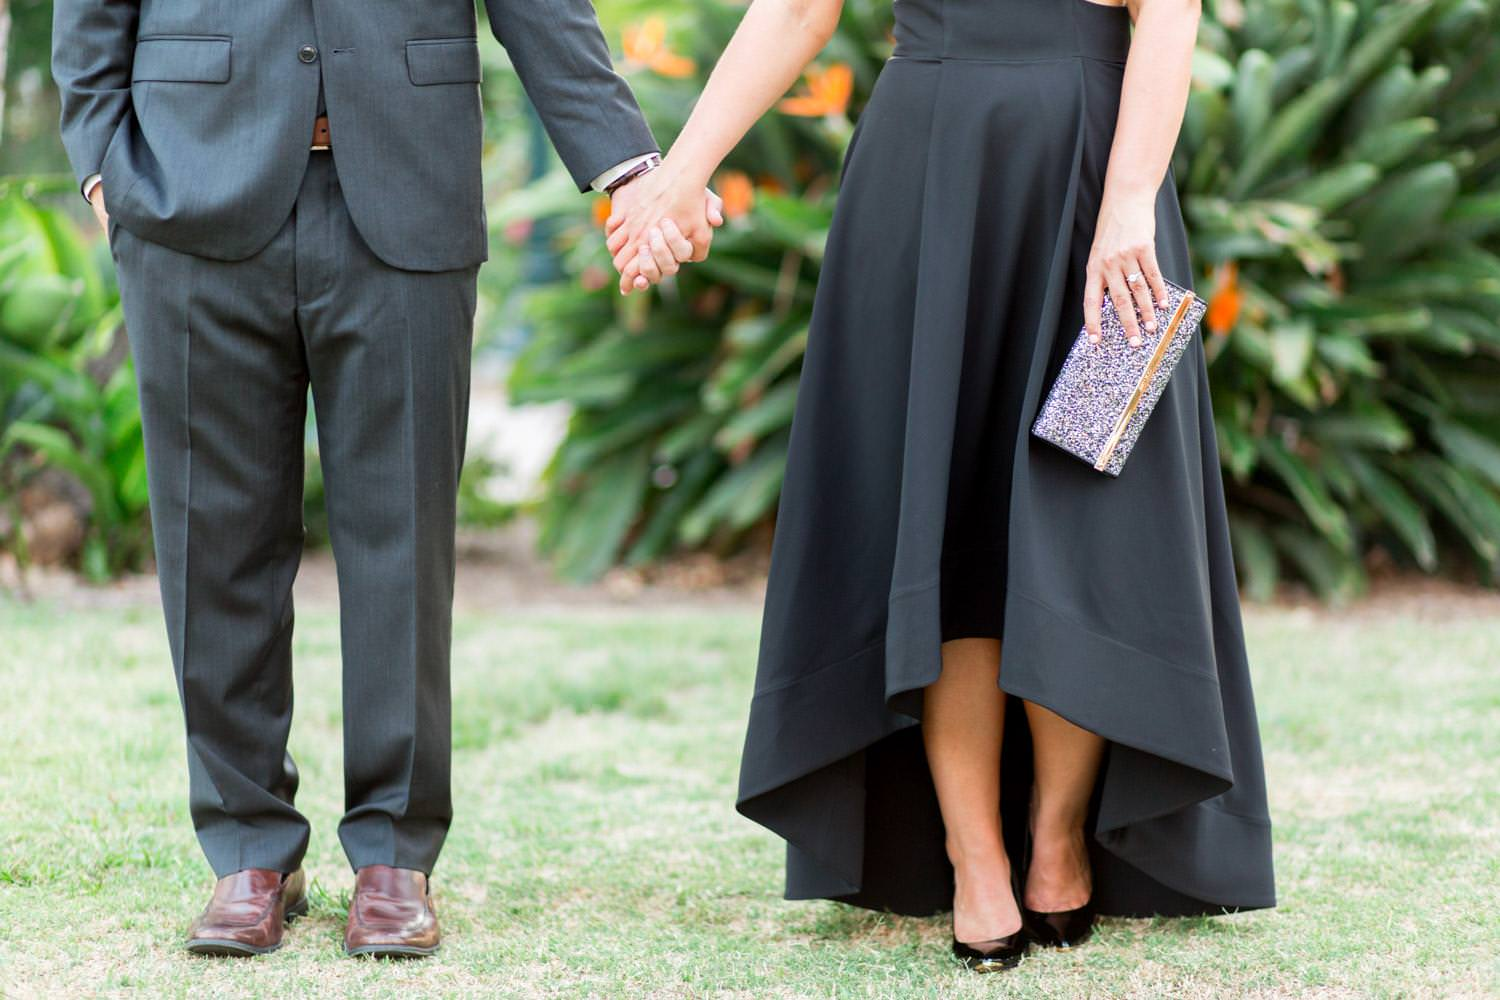 Sophisticated and chic formal engagement session outfit inspiration and ideas, Black gown and suit with Jimmy Choo black glitter clutch and black Ted Baker pumps for an engagement session in Balboa Park, Cavin Elizabeth Photography